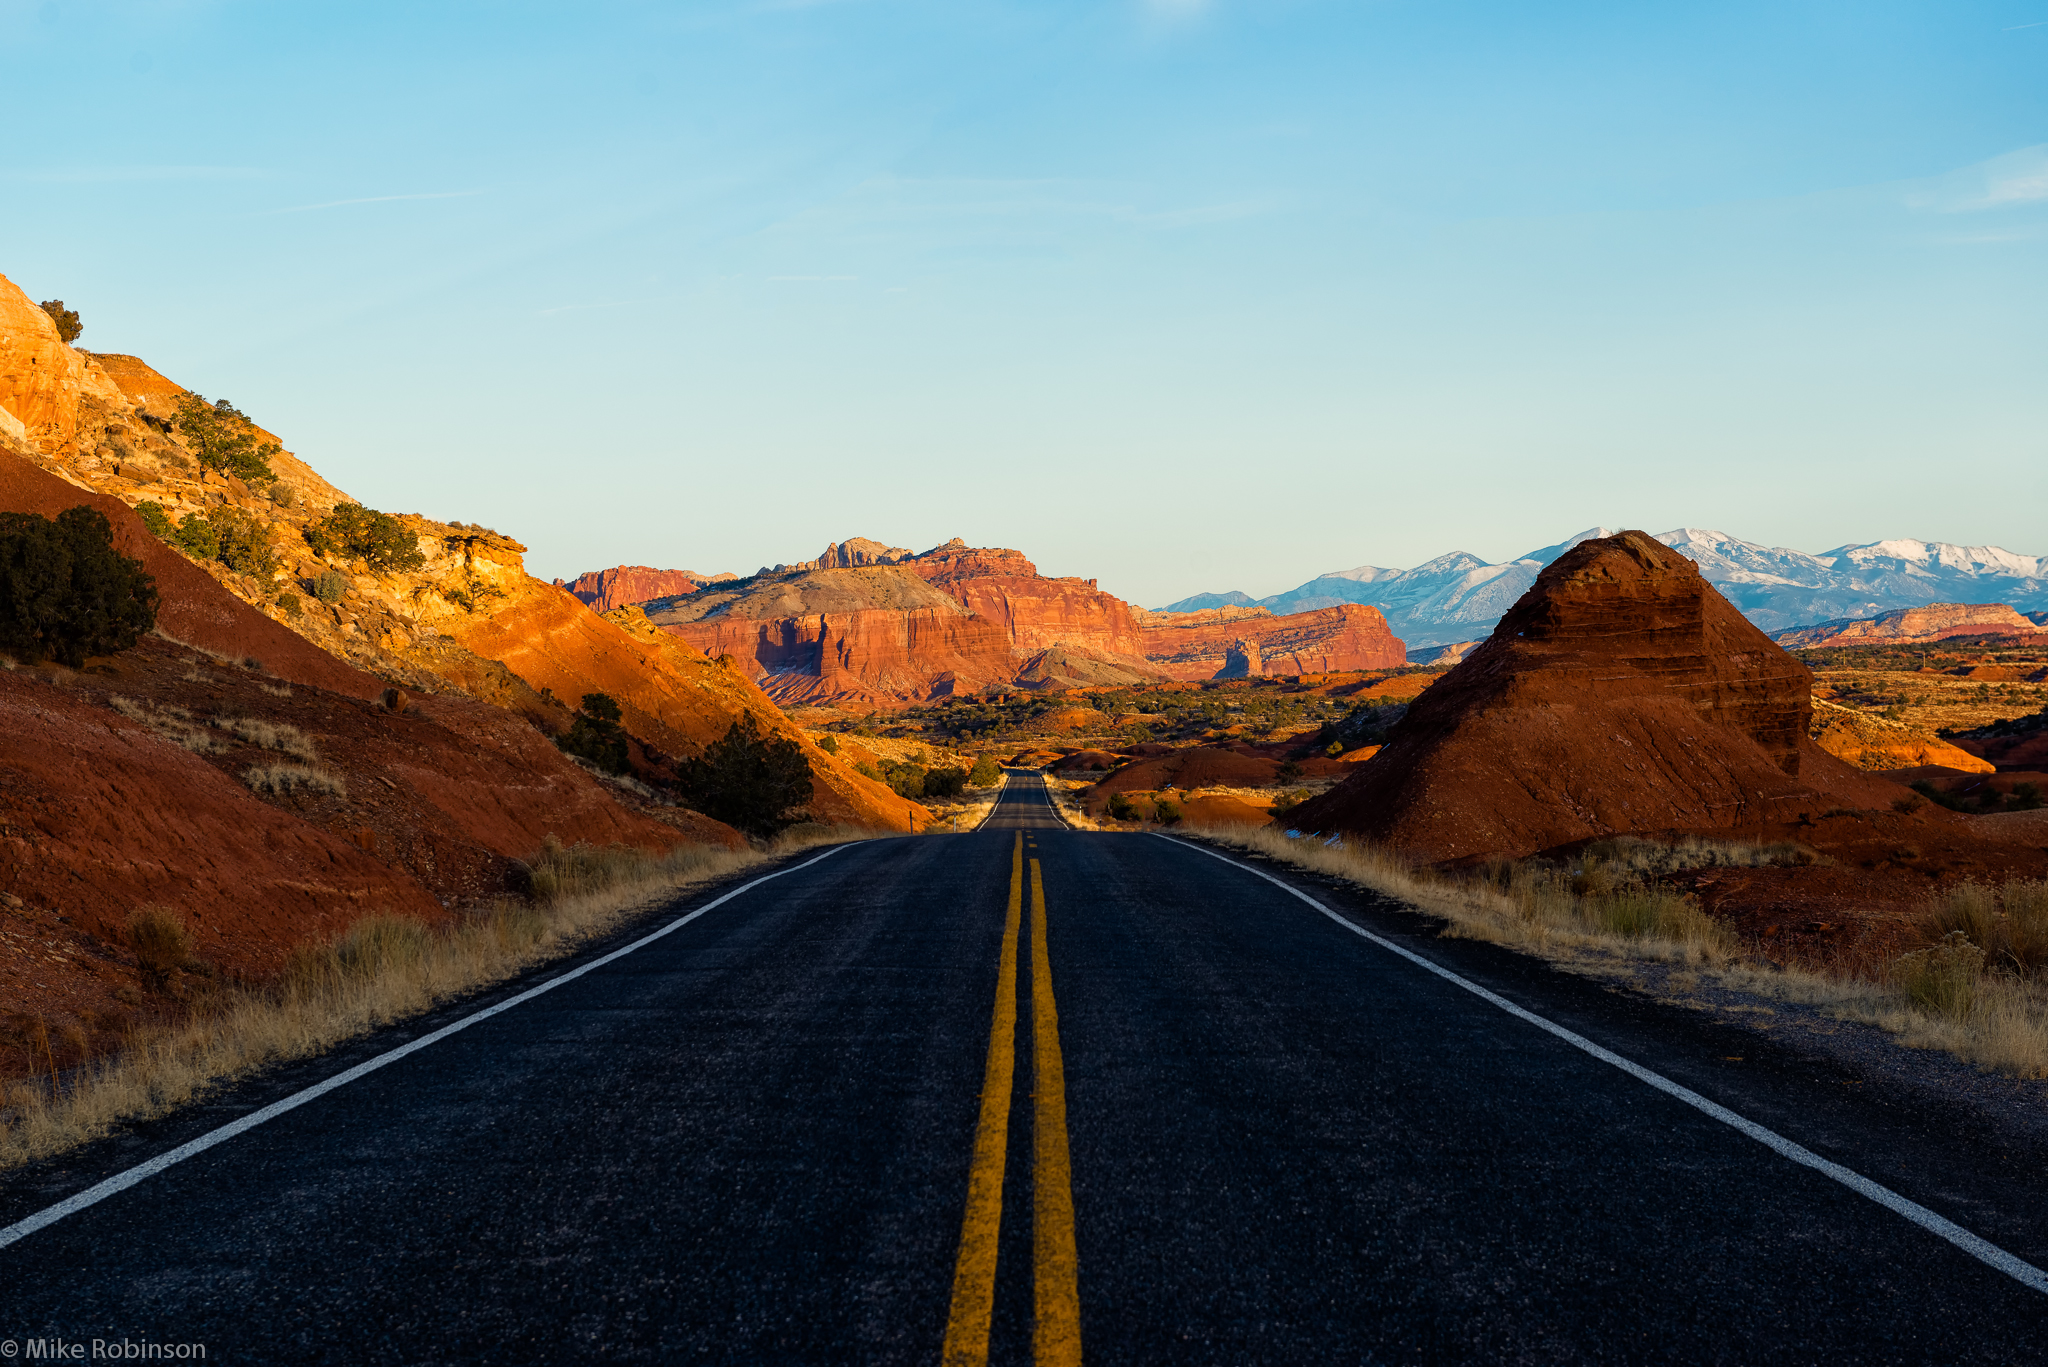 Desert highway road